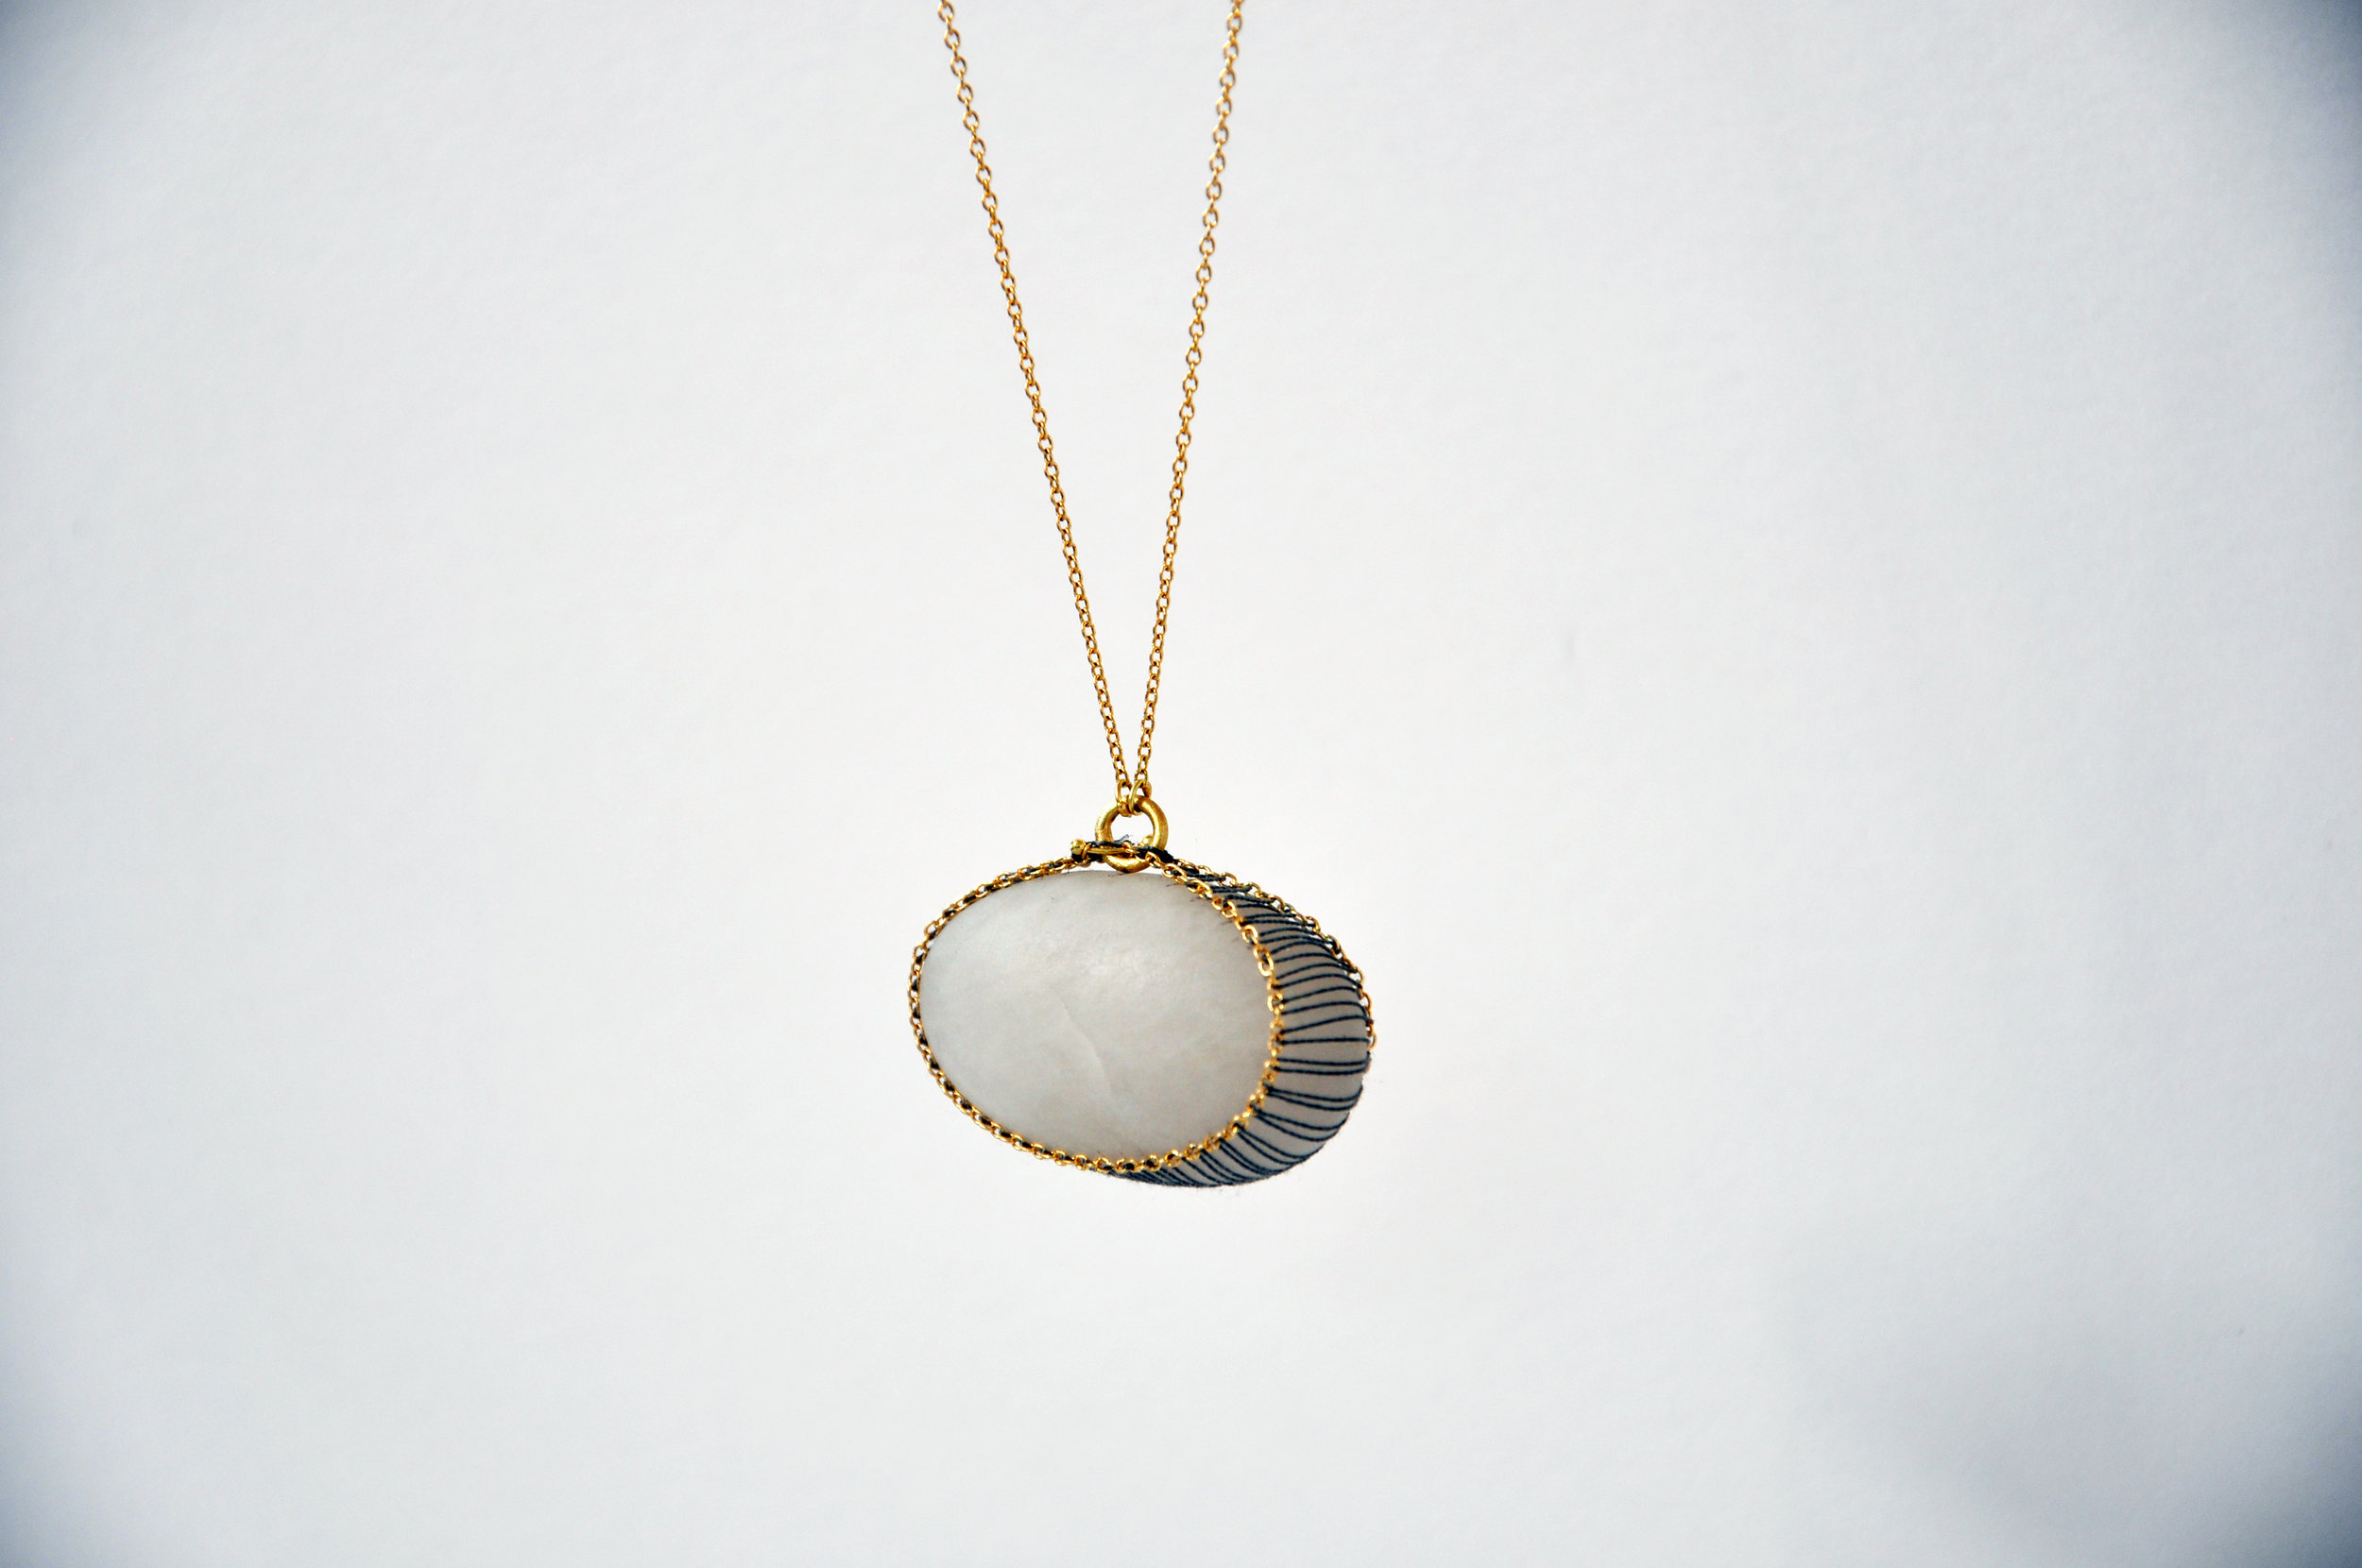 Betsy's Necklace